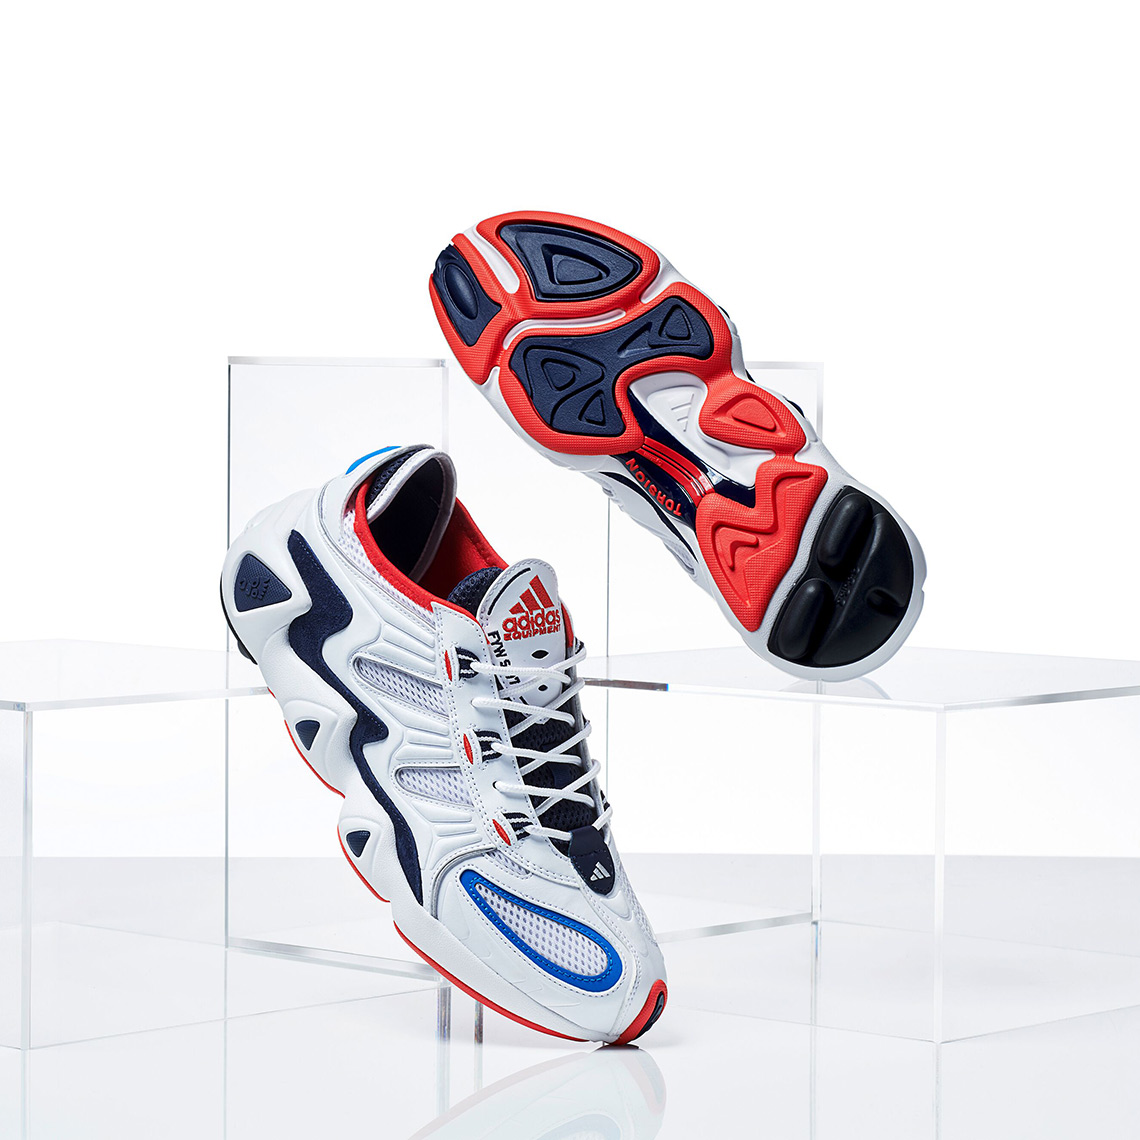 on sale 1f7e1 aba4e adidas FWY S-97 White Red Blue G27704 Release Date Info ...